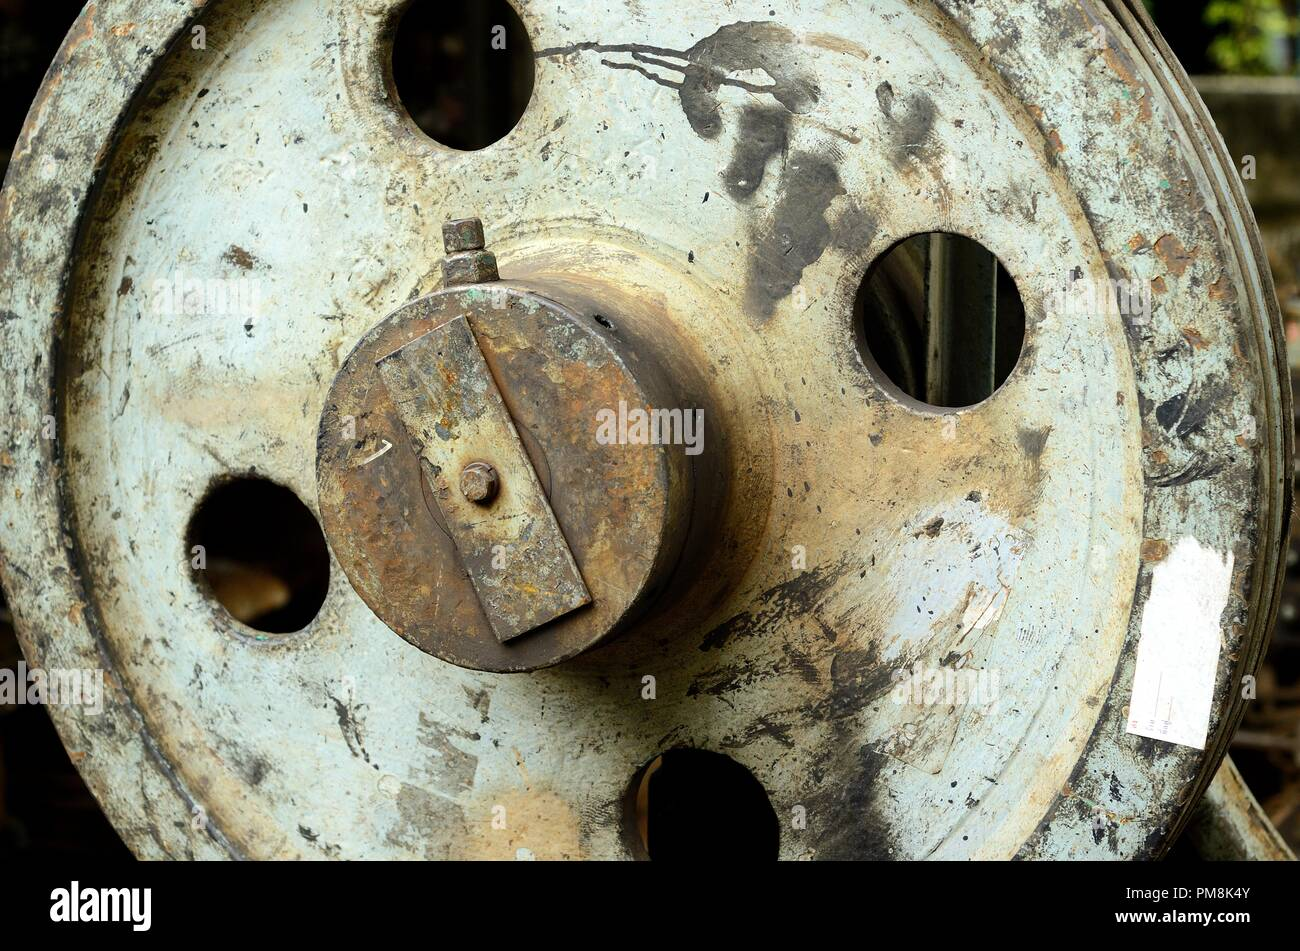 Pulley Wheel Stock Photos & Pulley Wheel Stock Images - Alamy